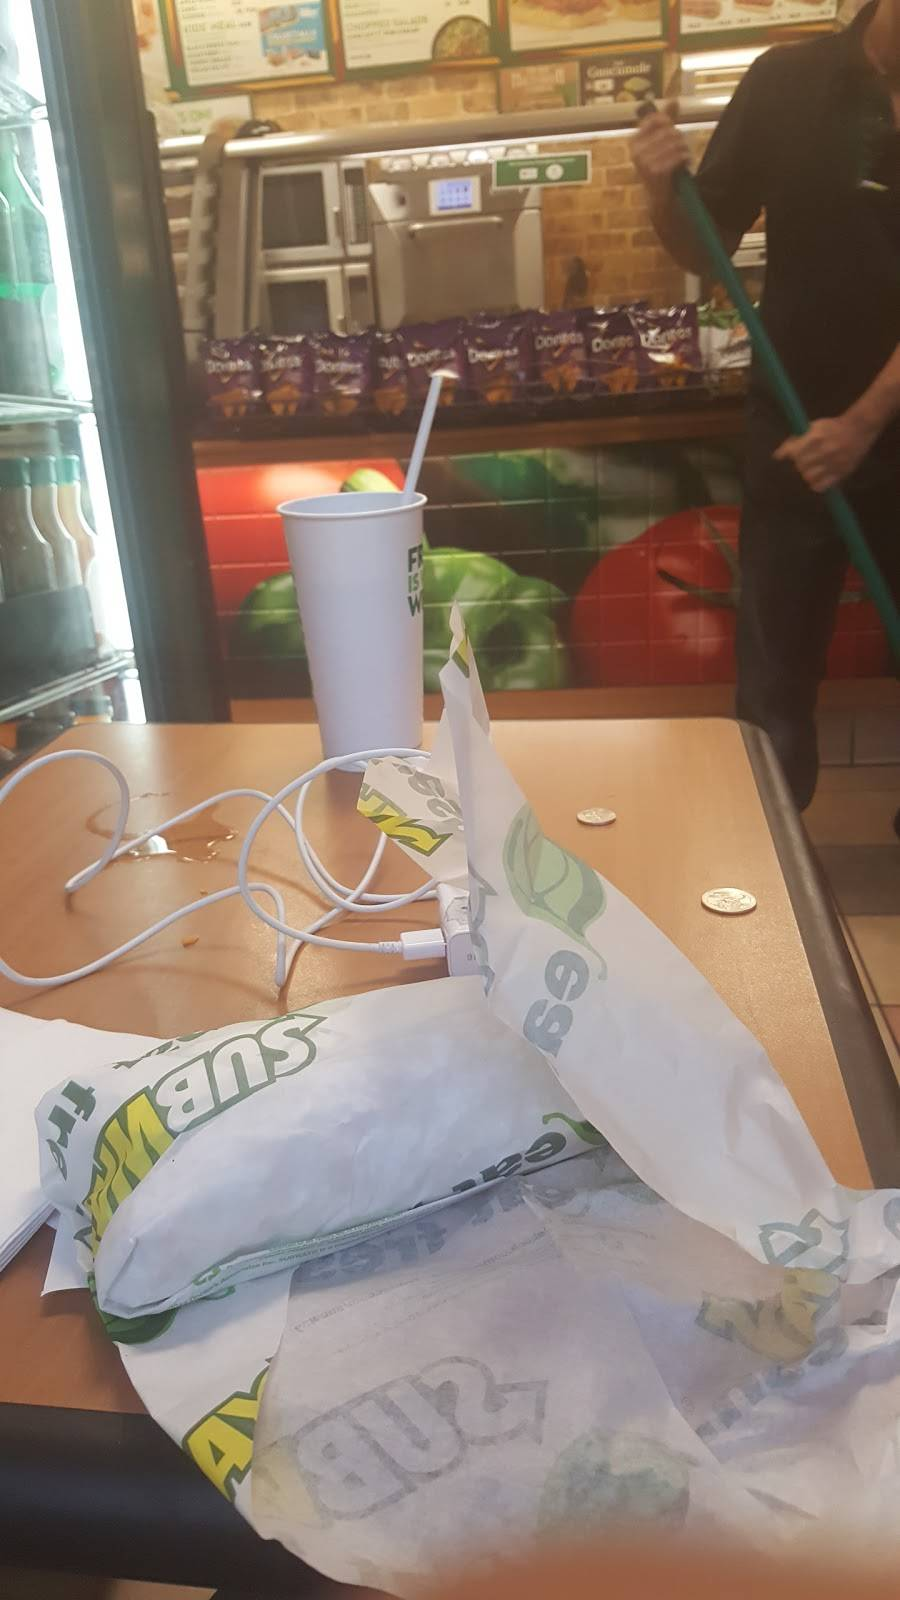 Subway Restaurants | restaurant | 555 West 42nd Street, Suite 14, Riverbank West, New York, NY 10036, USA | 2125945900 OR +1 212-594-5900